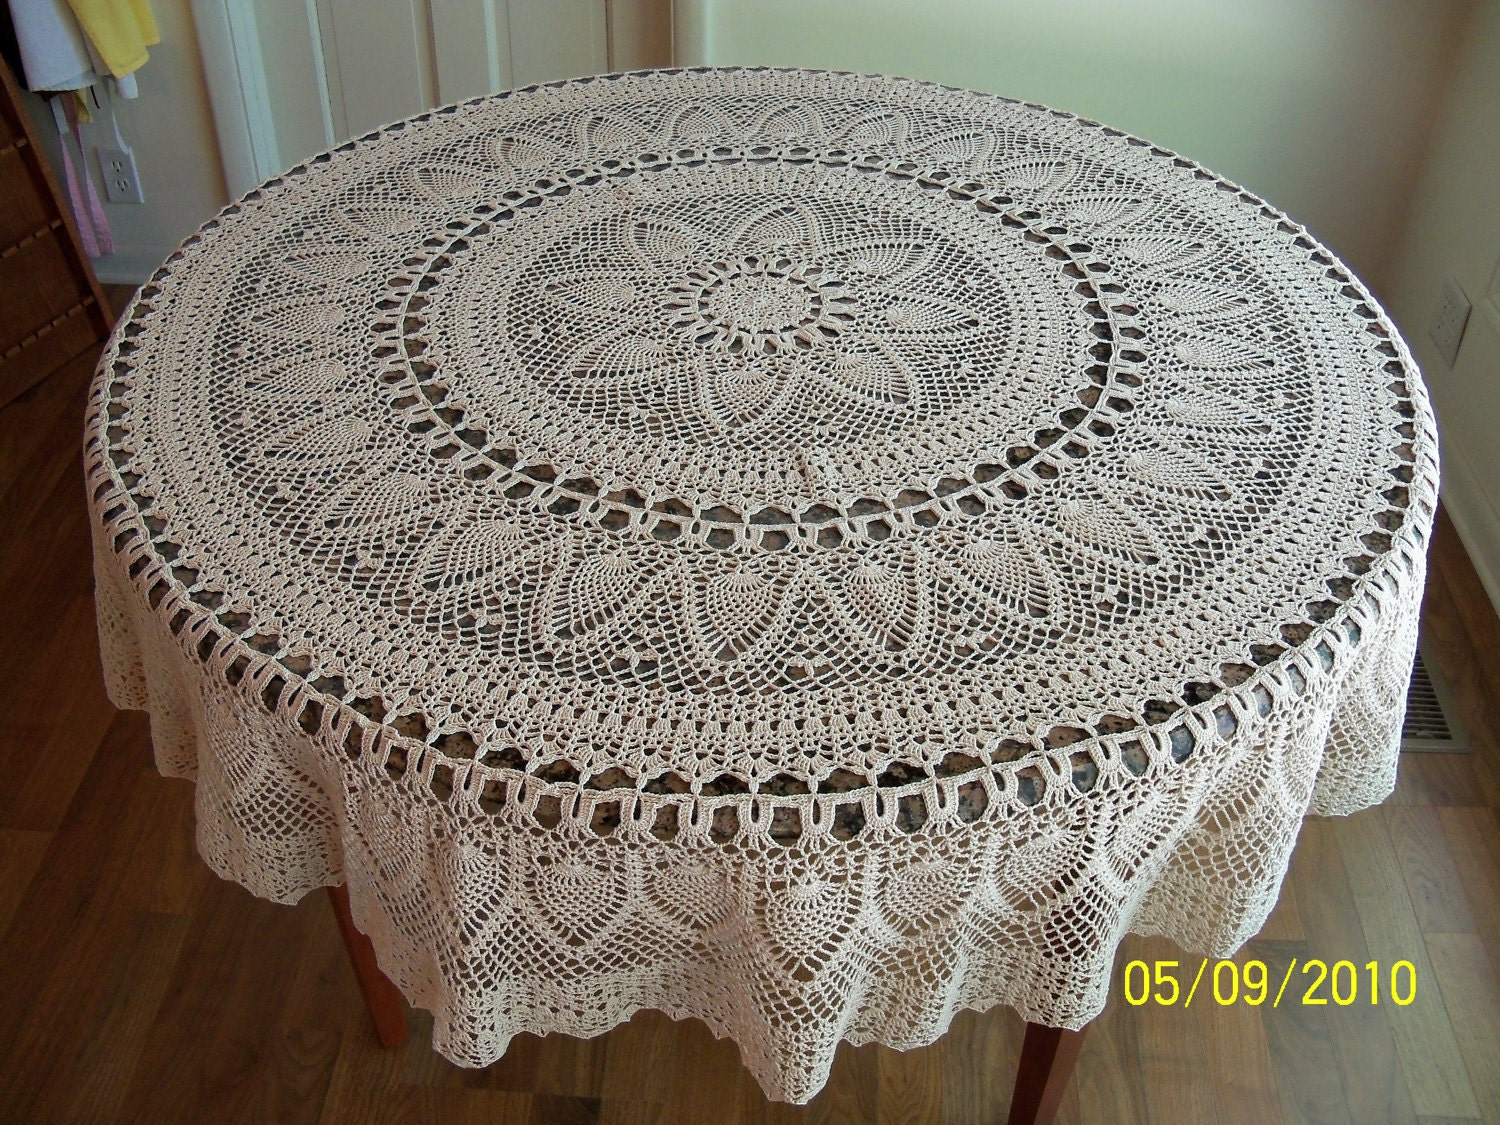 Handmade Crocheted Pineapple Tablecloth 70 inch Round by ...